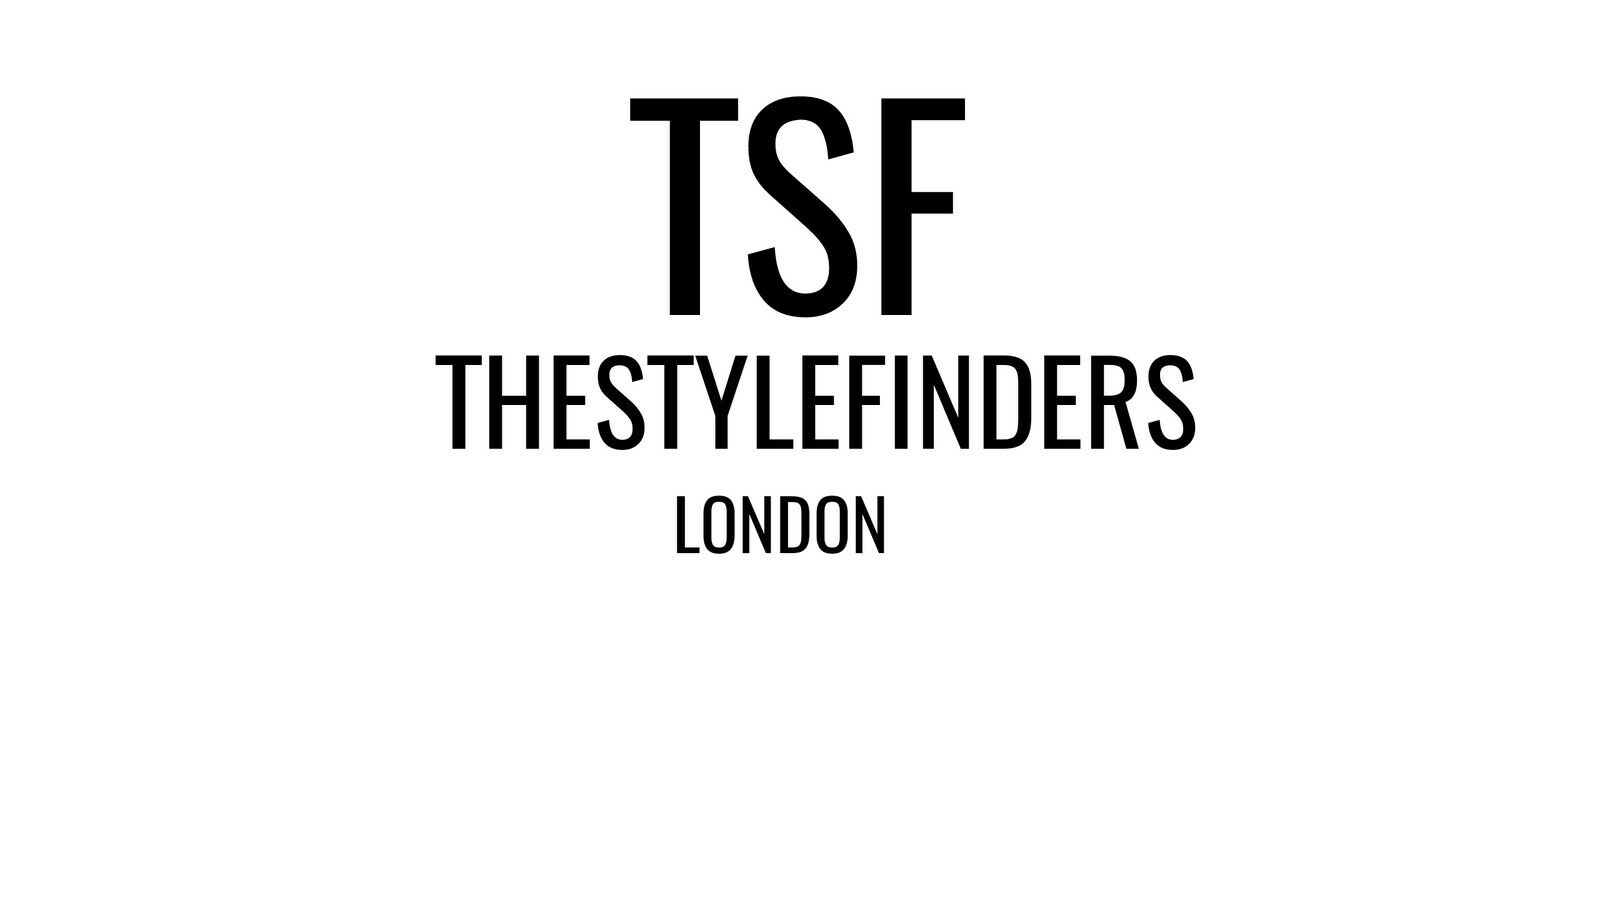 THESTYLEFINDERSOFFICIAL